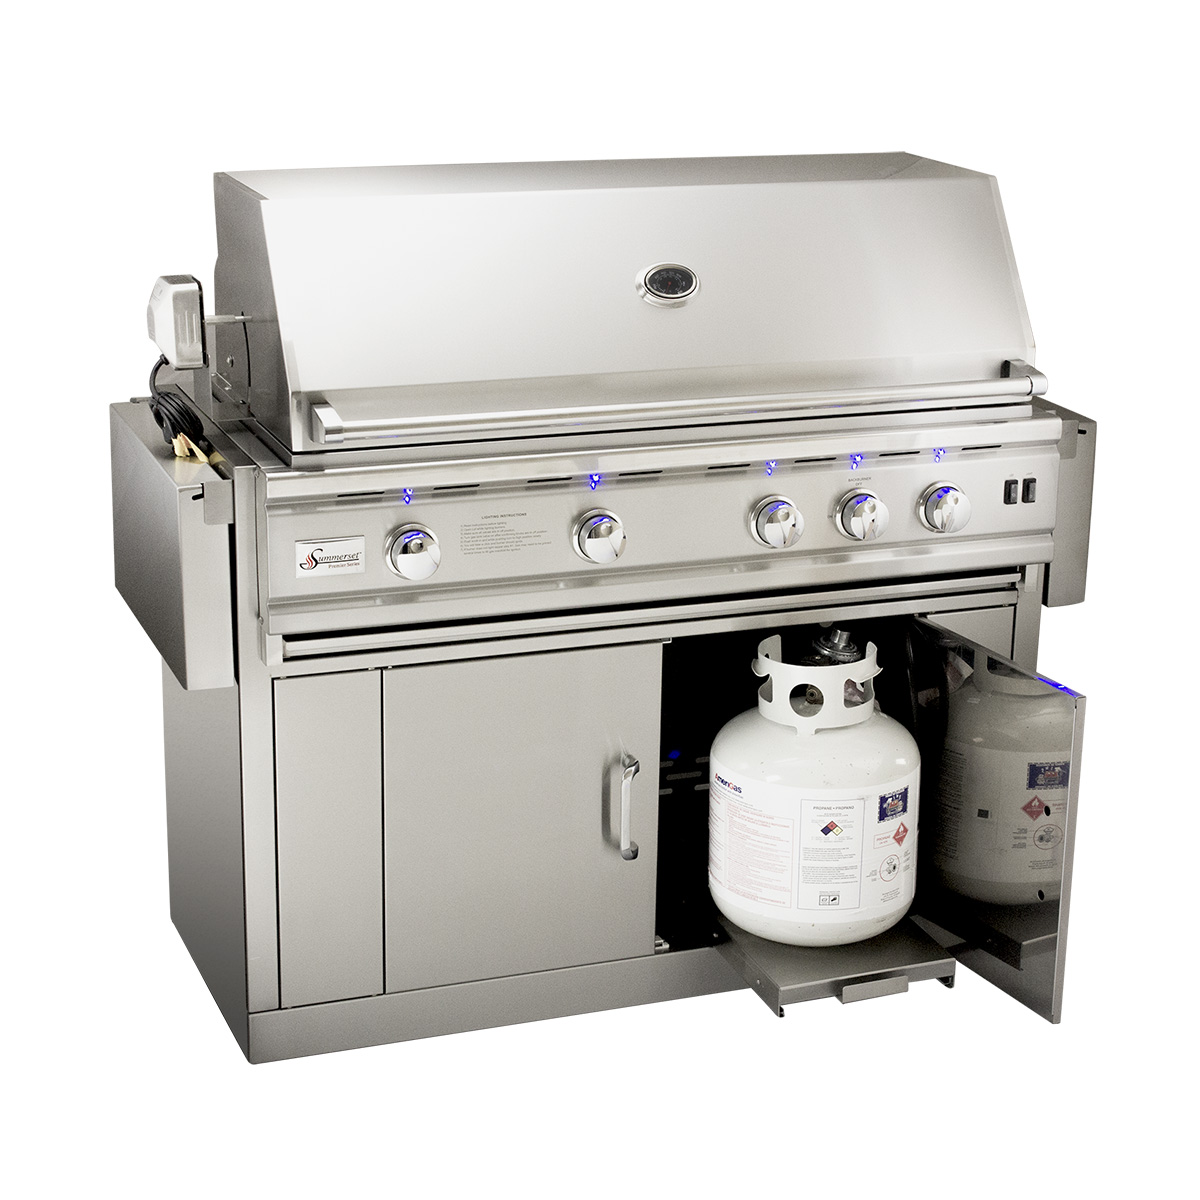 Propane Gas Grills ~ Summerset trld in stainless steel grill w rotisserie